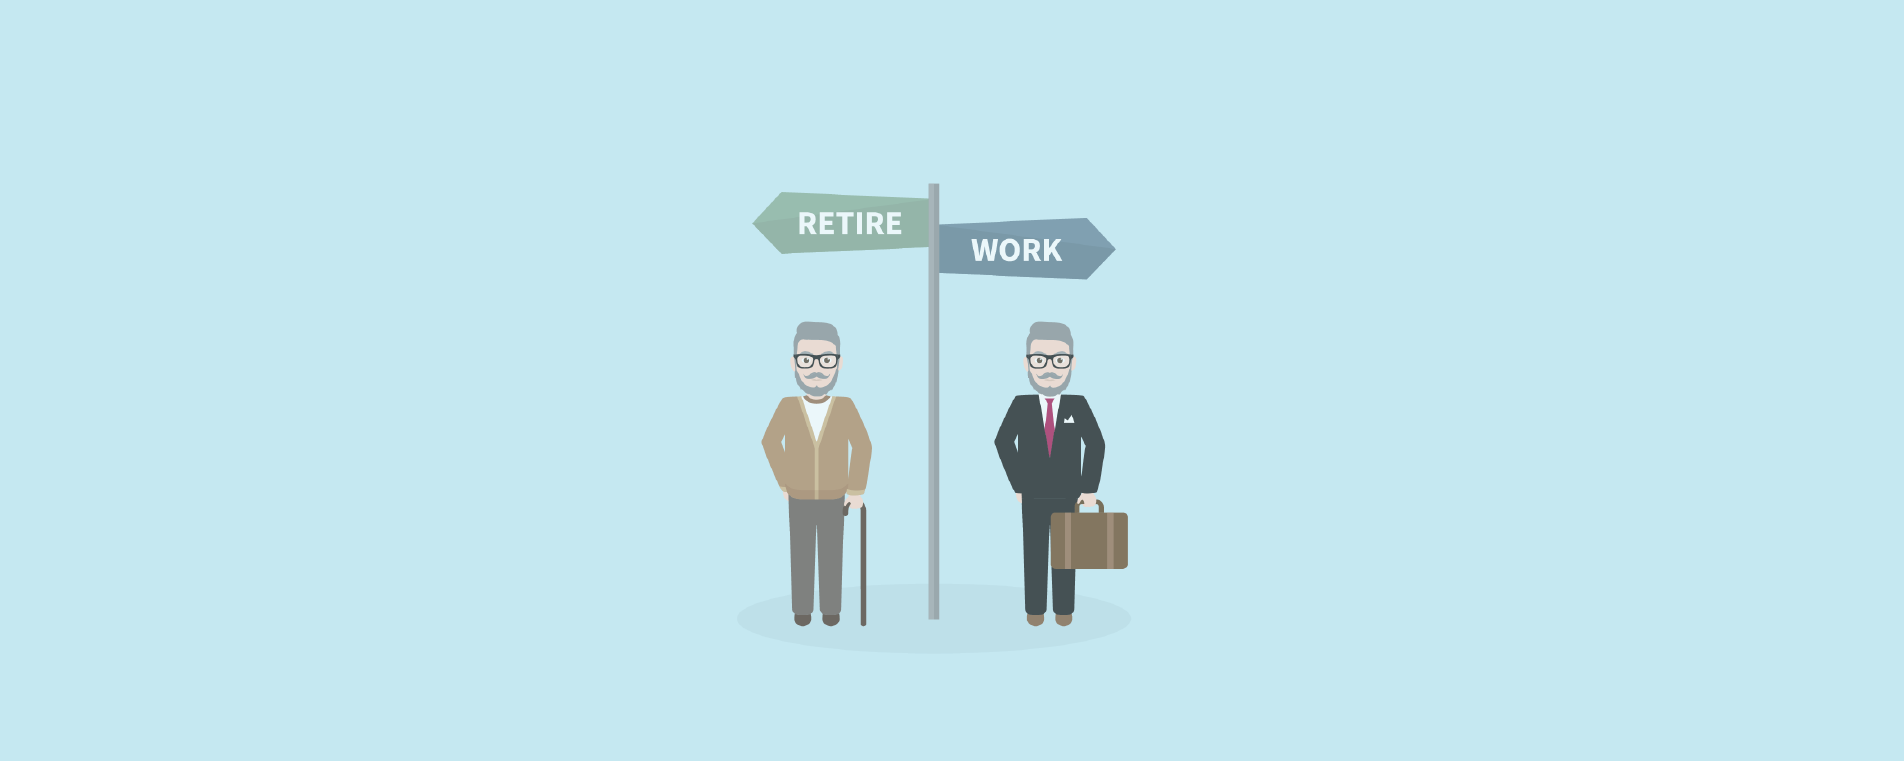 baby-boomers-workplace